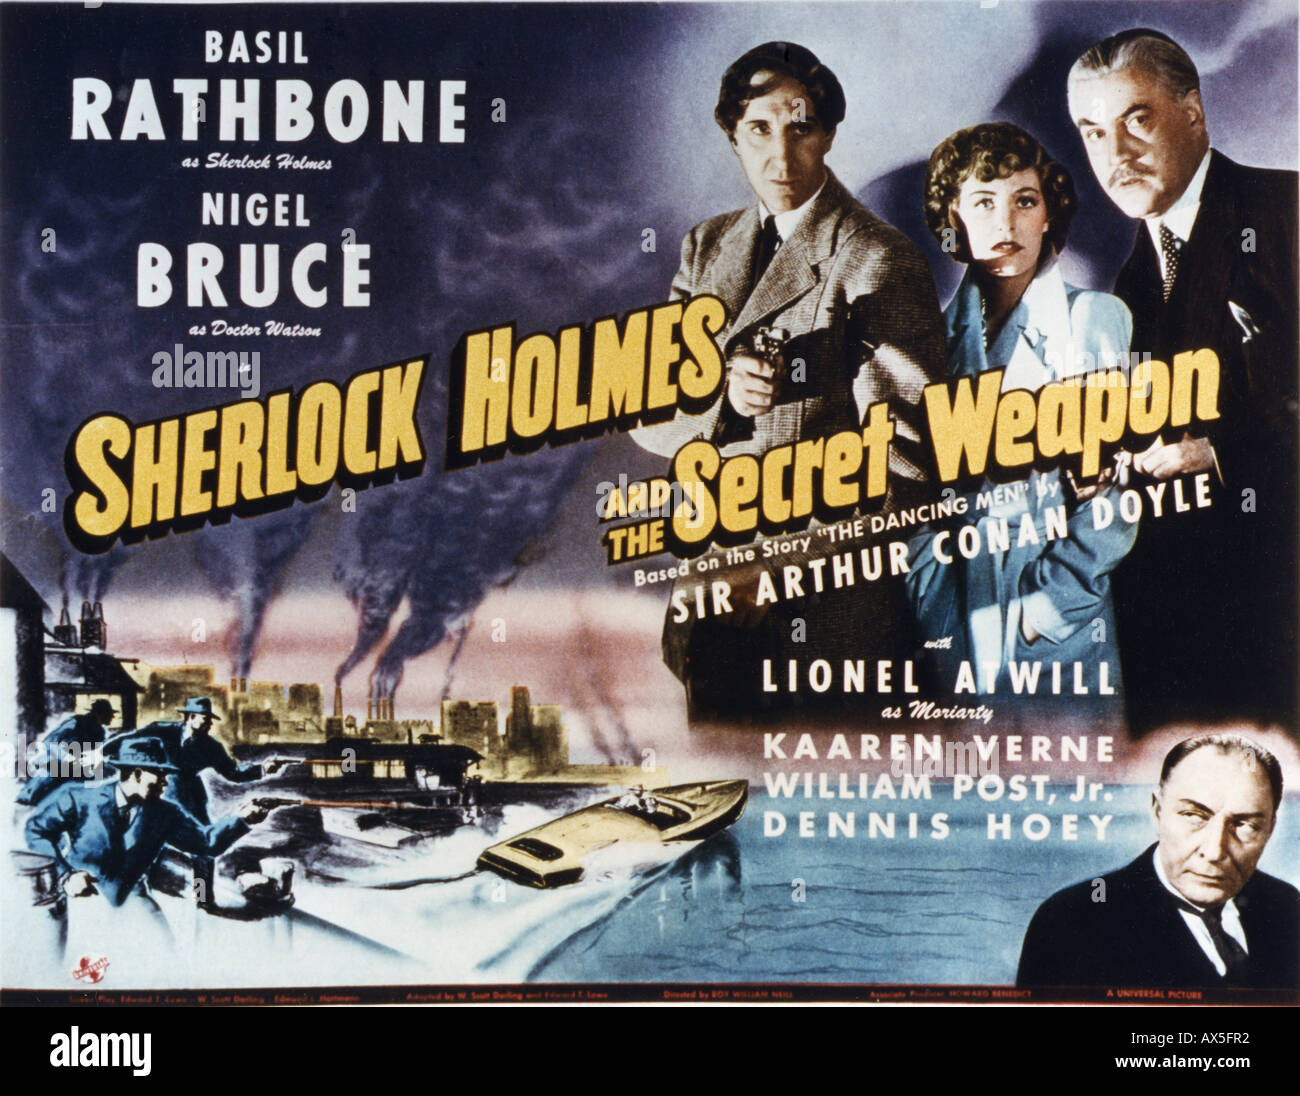 SHERLOCK HOLMES und THE SECRET WEAPON Plakat für Universal Film 1942 Stockbild